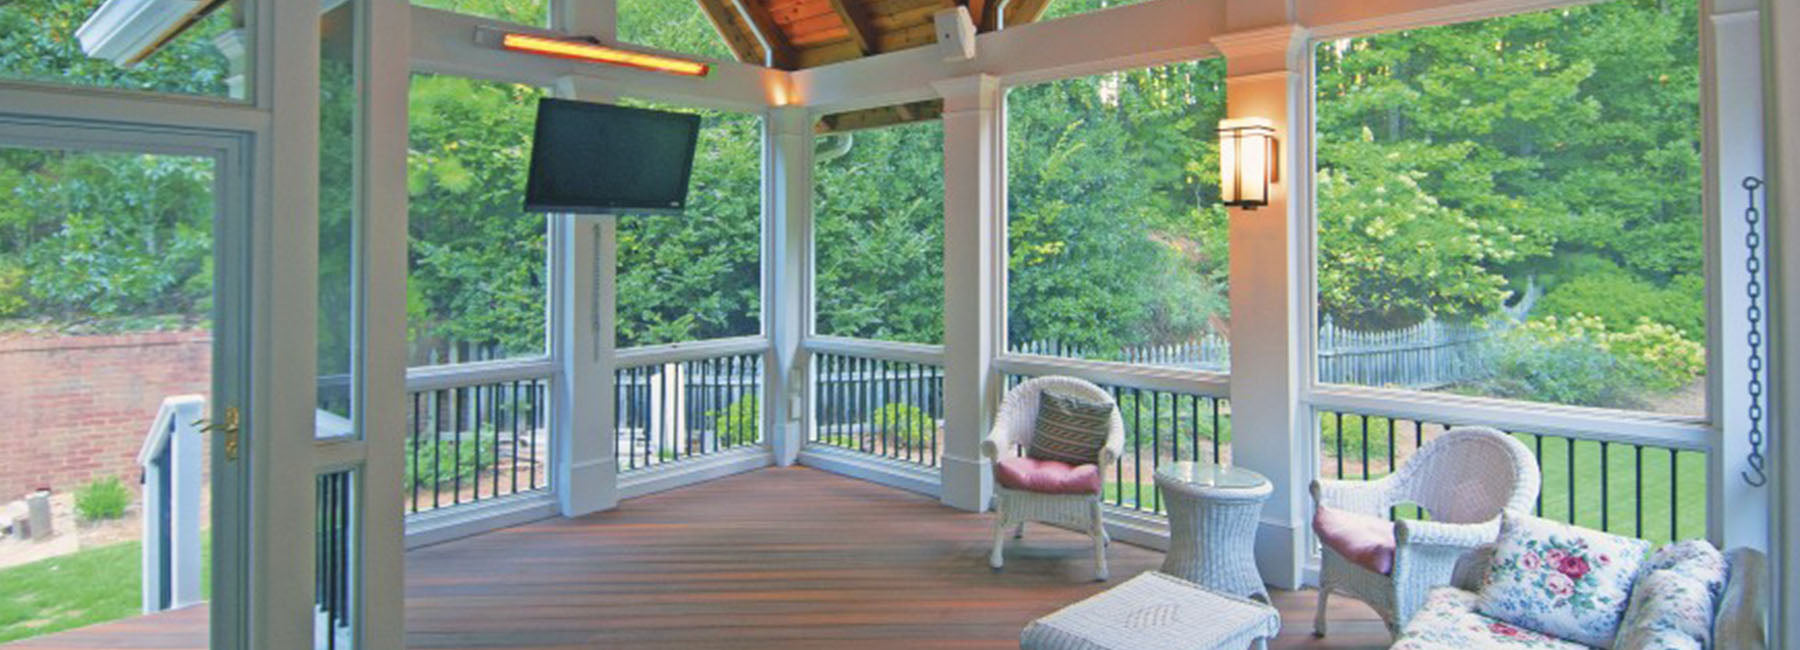 Screen Porch Dreaming